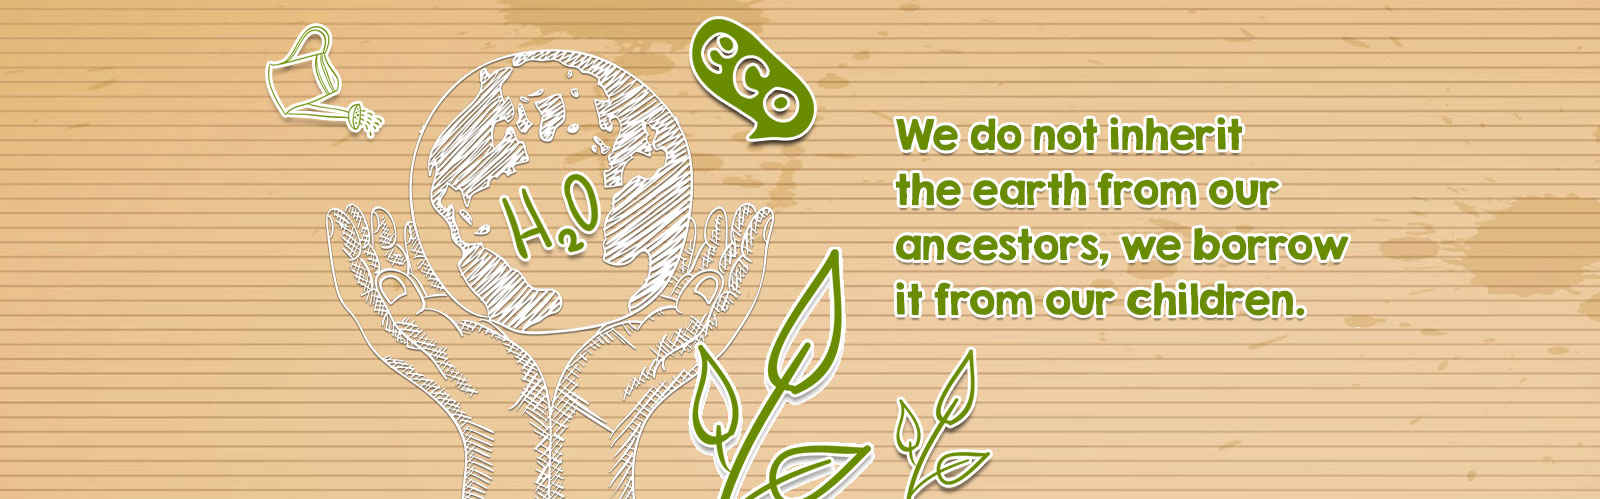 We do not inherit the earth from our ancestors, we borrow it from our children